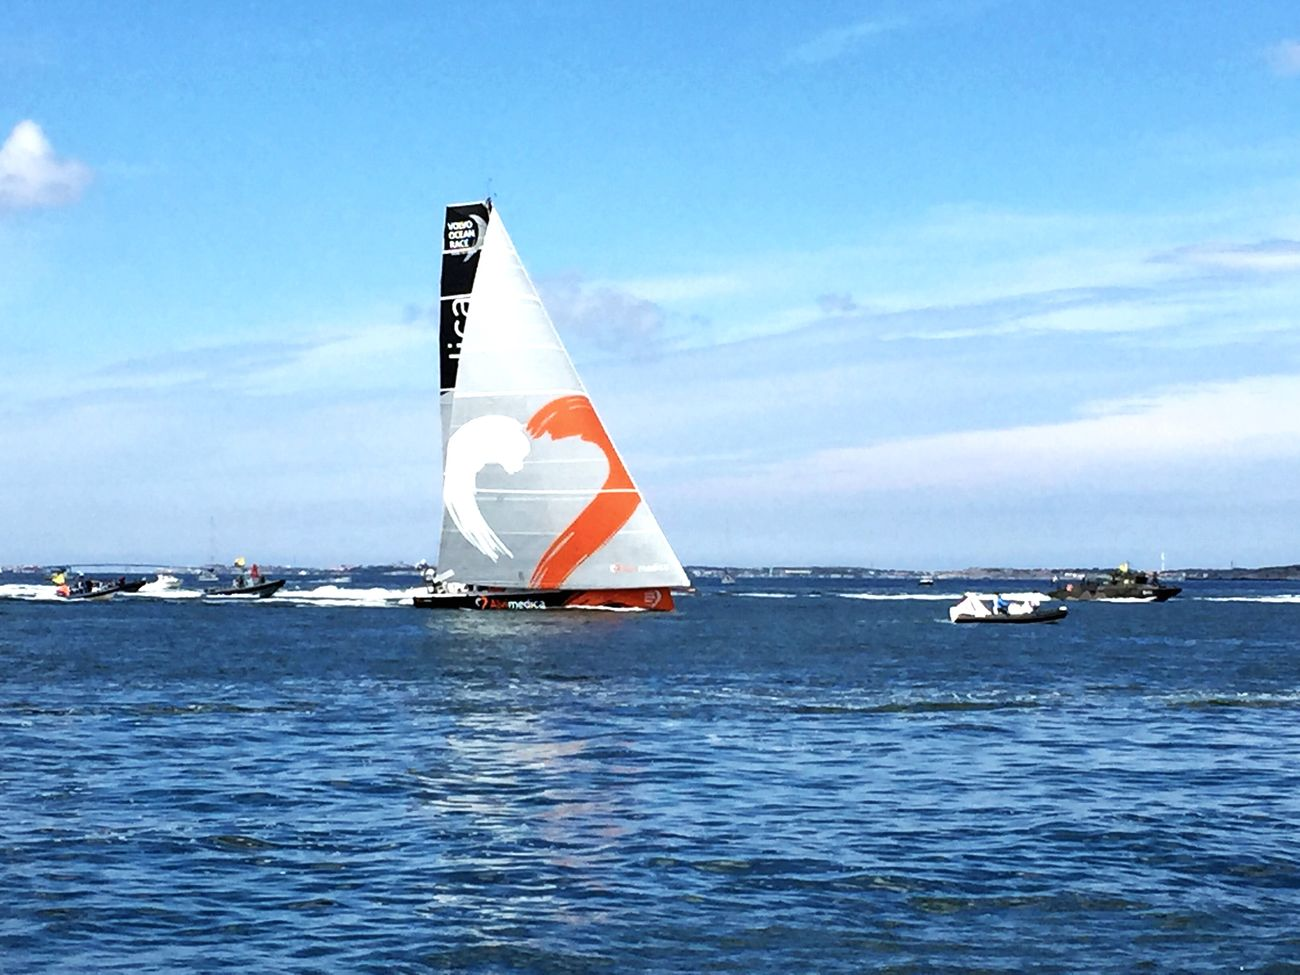 Team Alvimedica finished first to Gothenburg Alvimedica Volvooceanrace  Vor